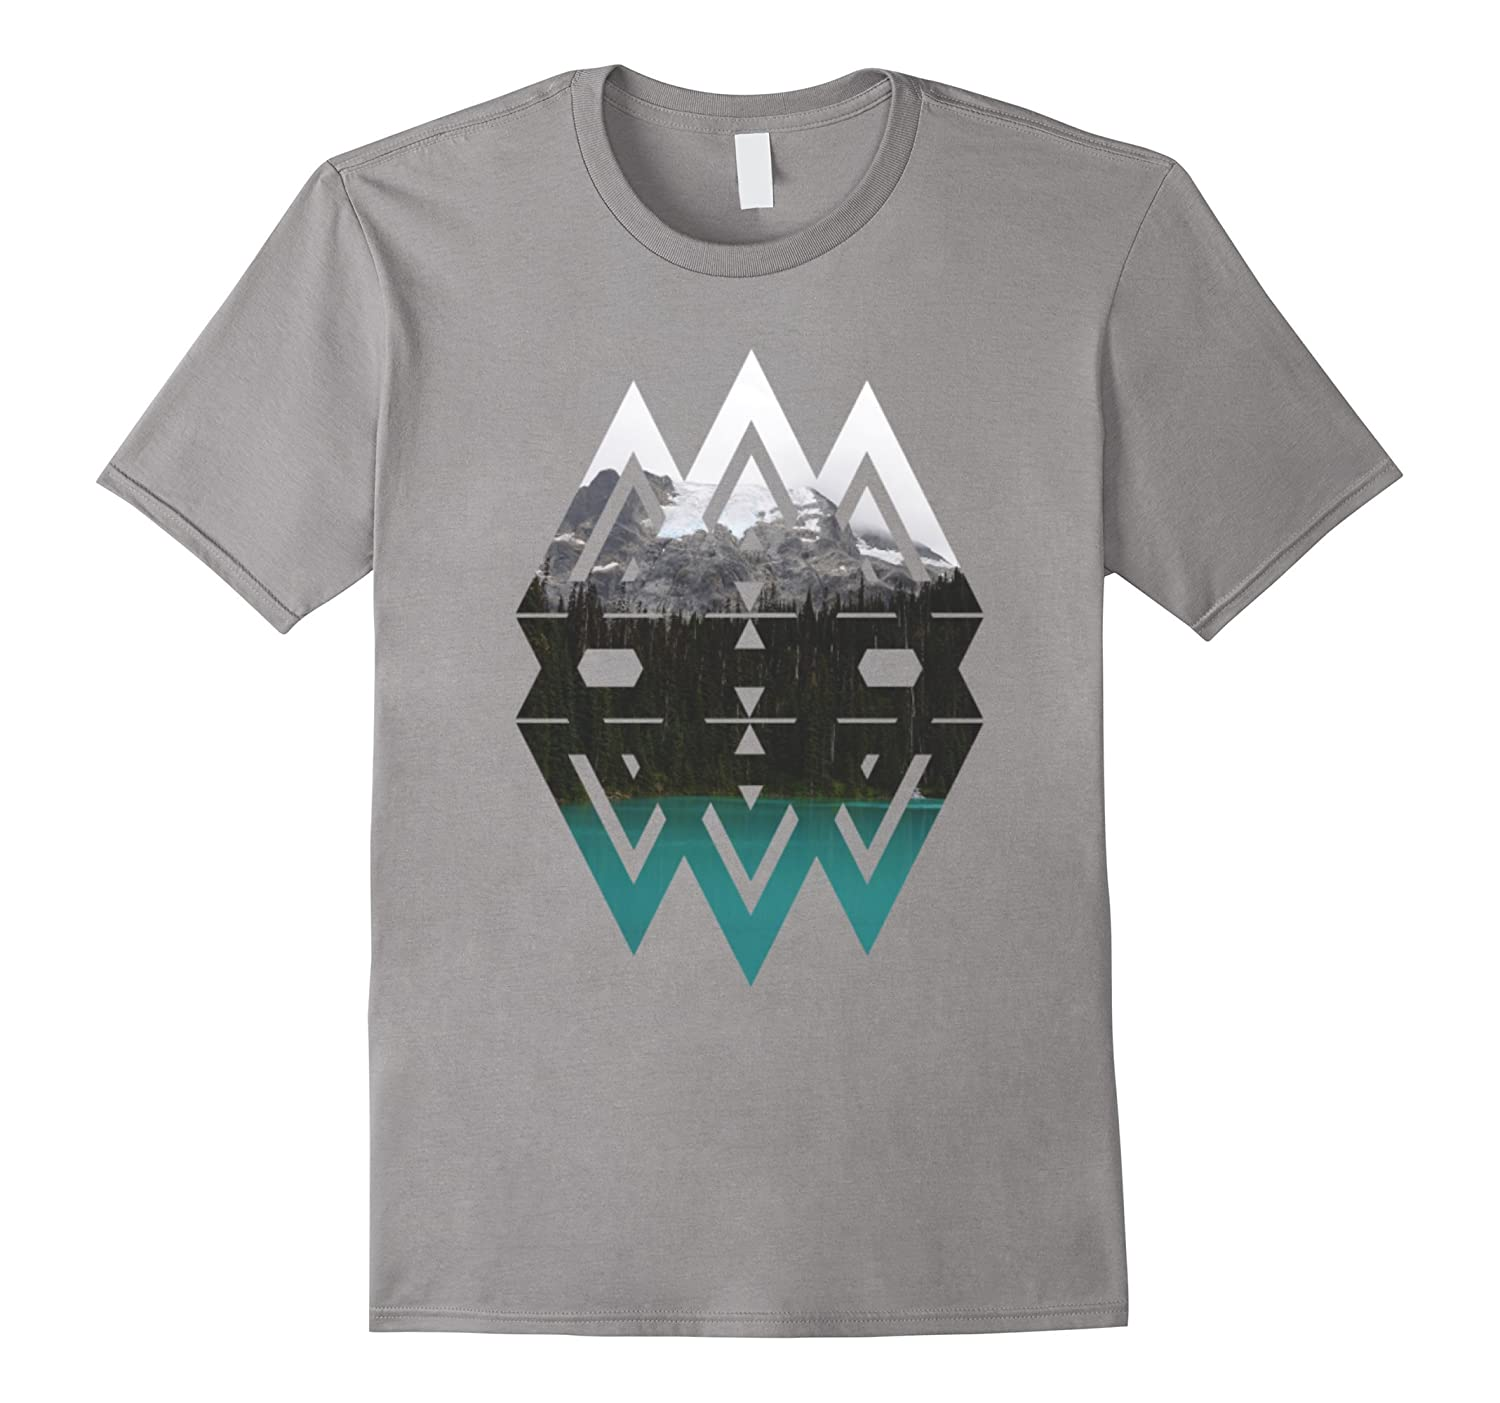 Beautiful Triangle Landscape T-Shirt For Art-BN